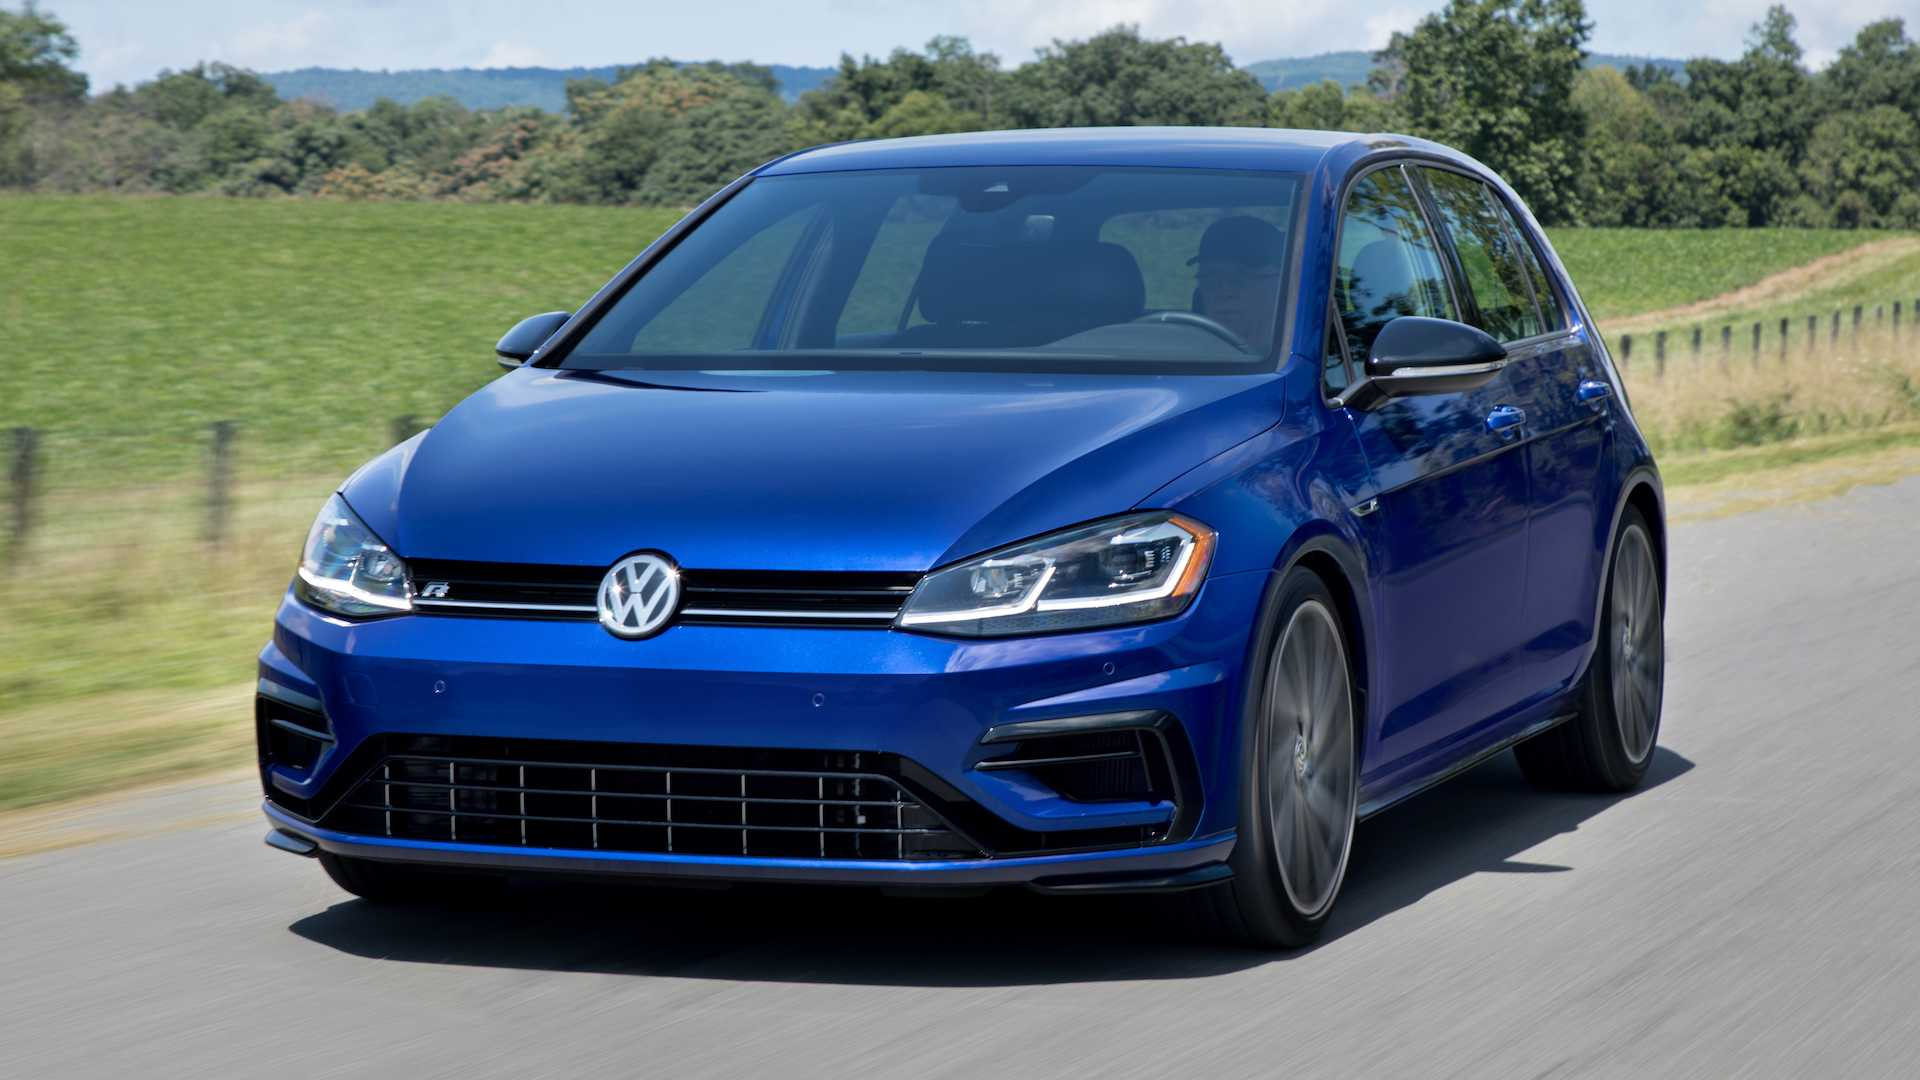 46 The Volkswagen Golf Gti 2020 Wallpaper